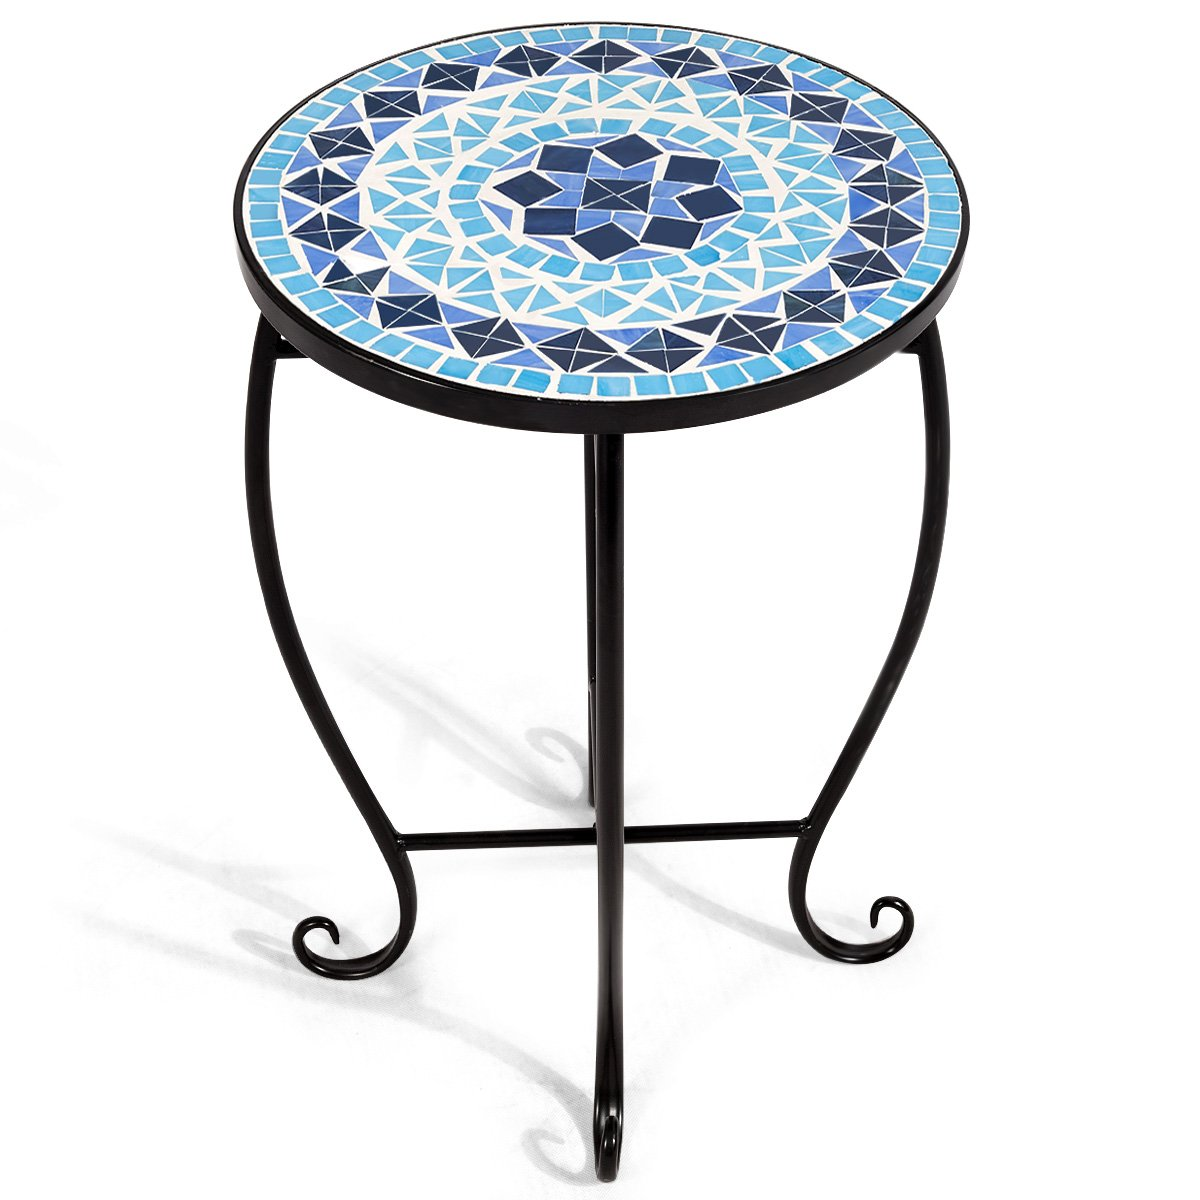 giantex mosaic round side accent table patio plant stand porch beach glass top theme balcony back deck pool decor metal cobalt living room interior design wood and end tables